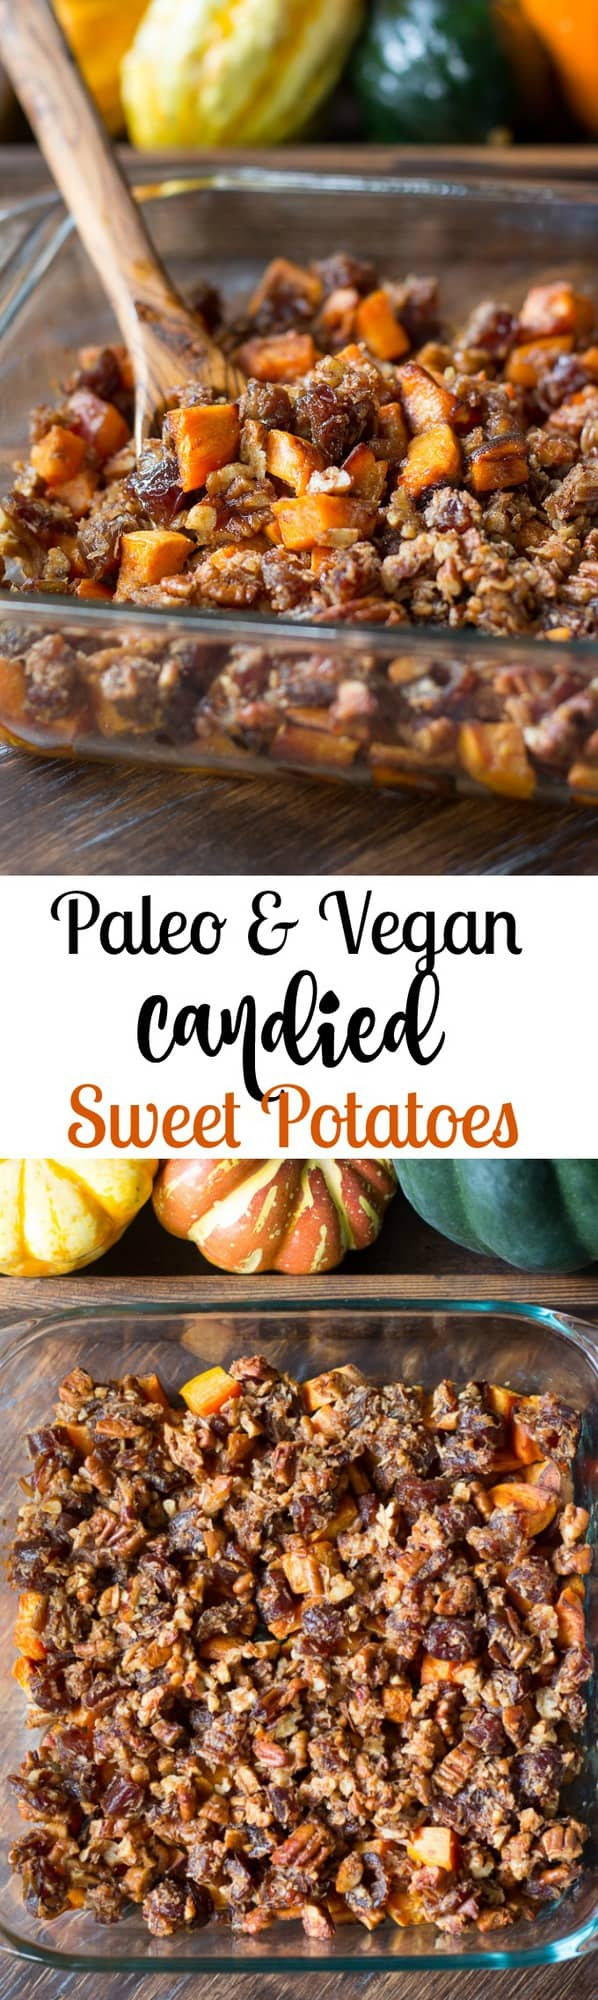 paleo candied sweet potatoes with dates pecans coconut and a touch of maple syrup refined sugar free and vegan